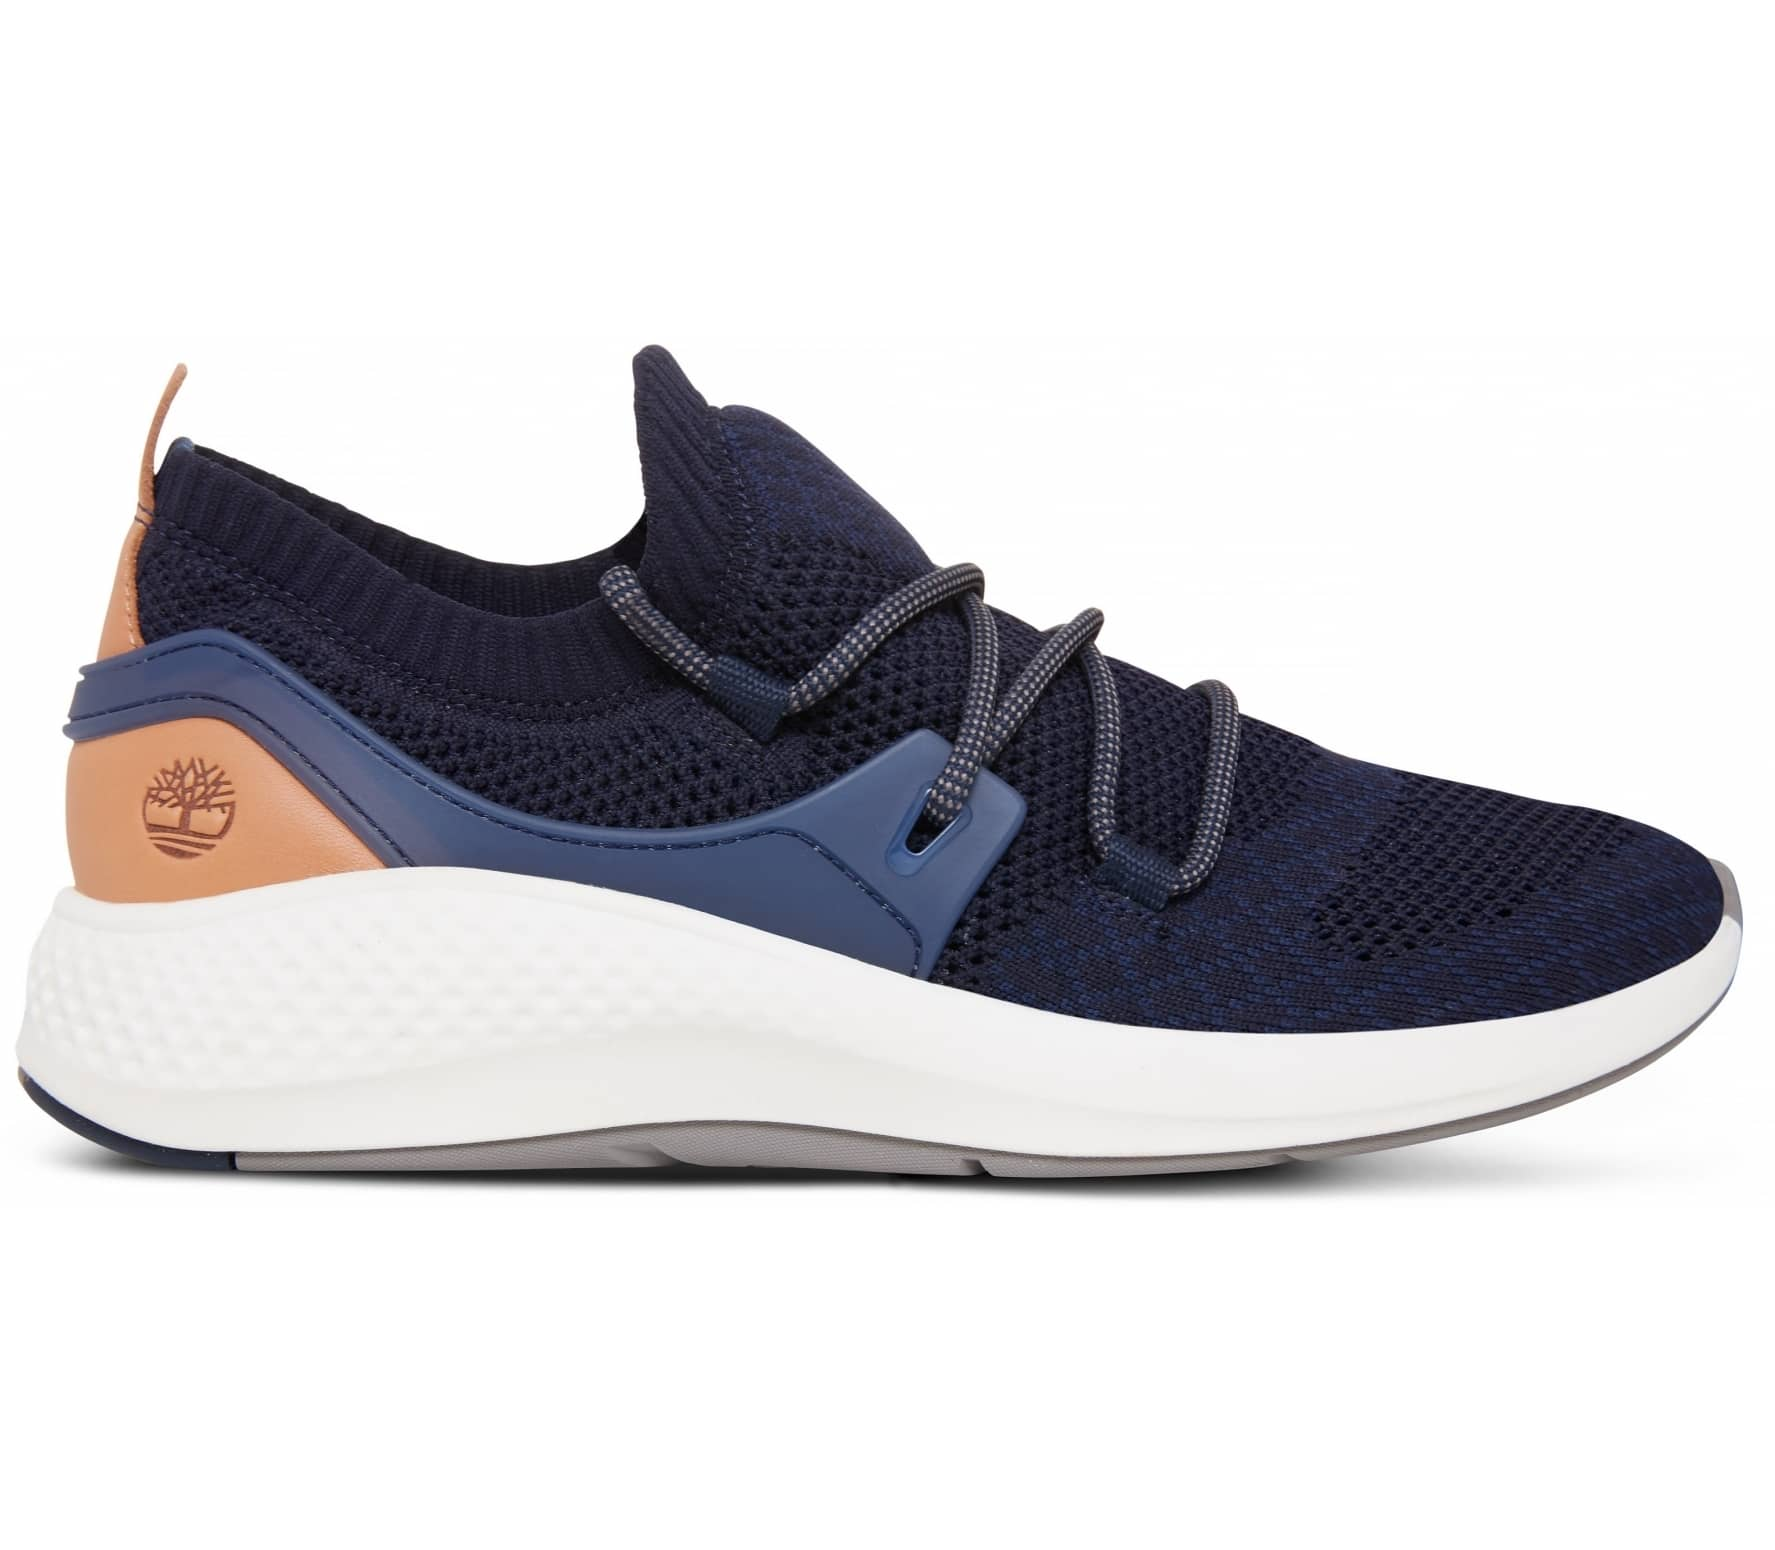 6dc6aad84bcd Timberland - FlyRoam Go Knit Oxford men s mountain lifestyle shoes  (black white)